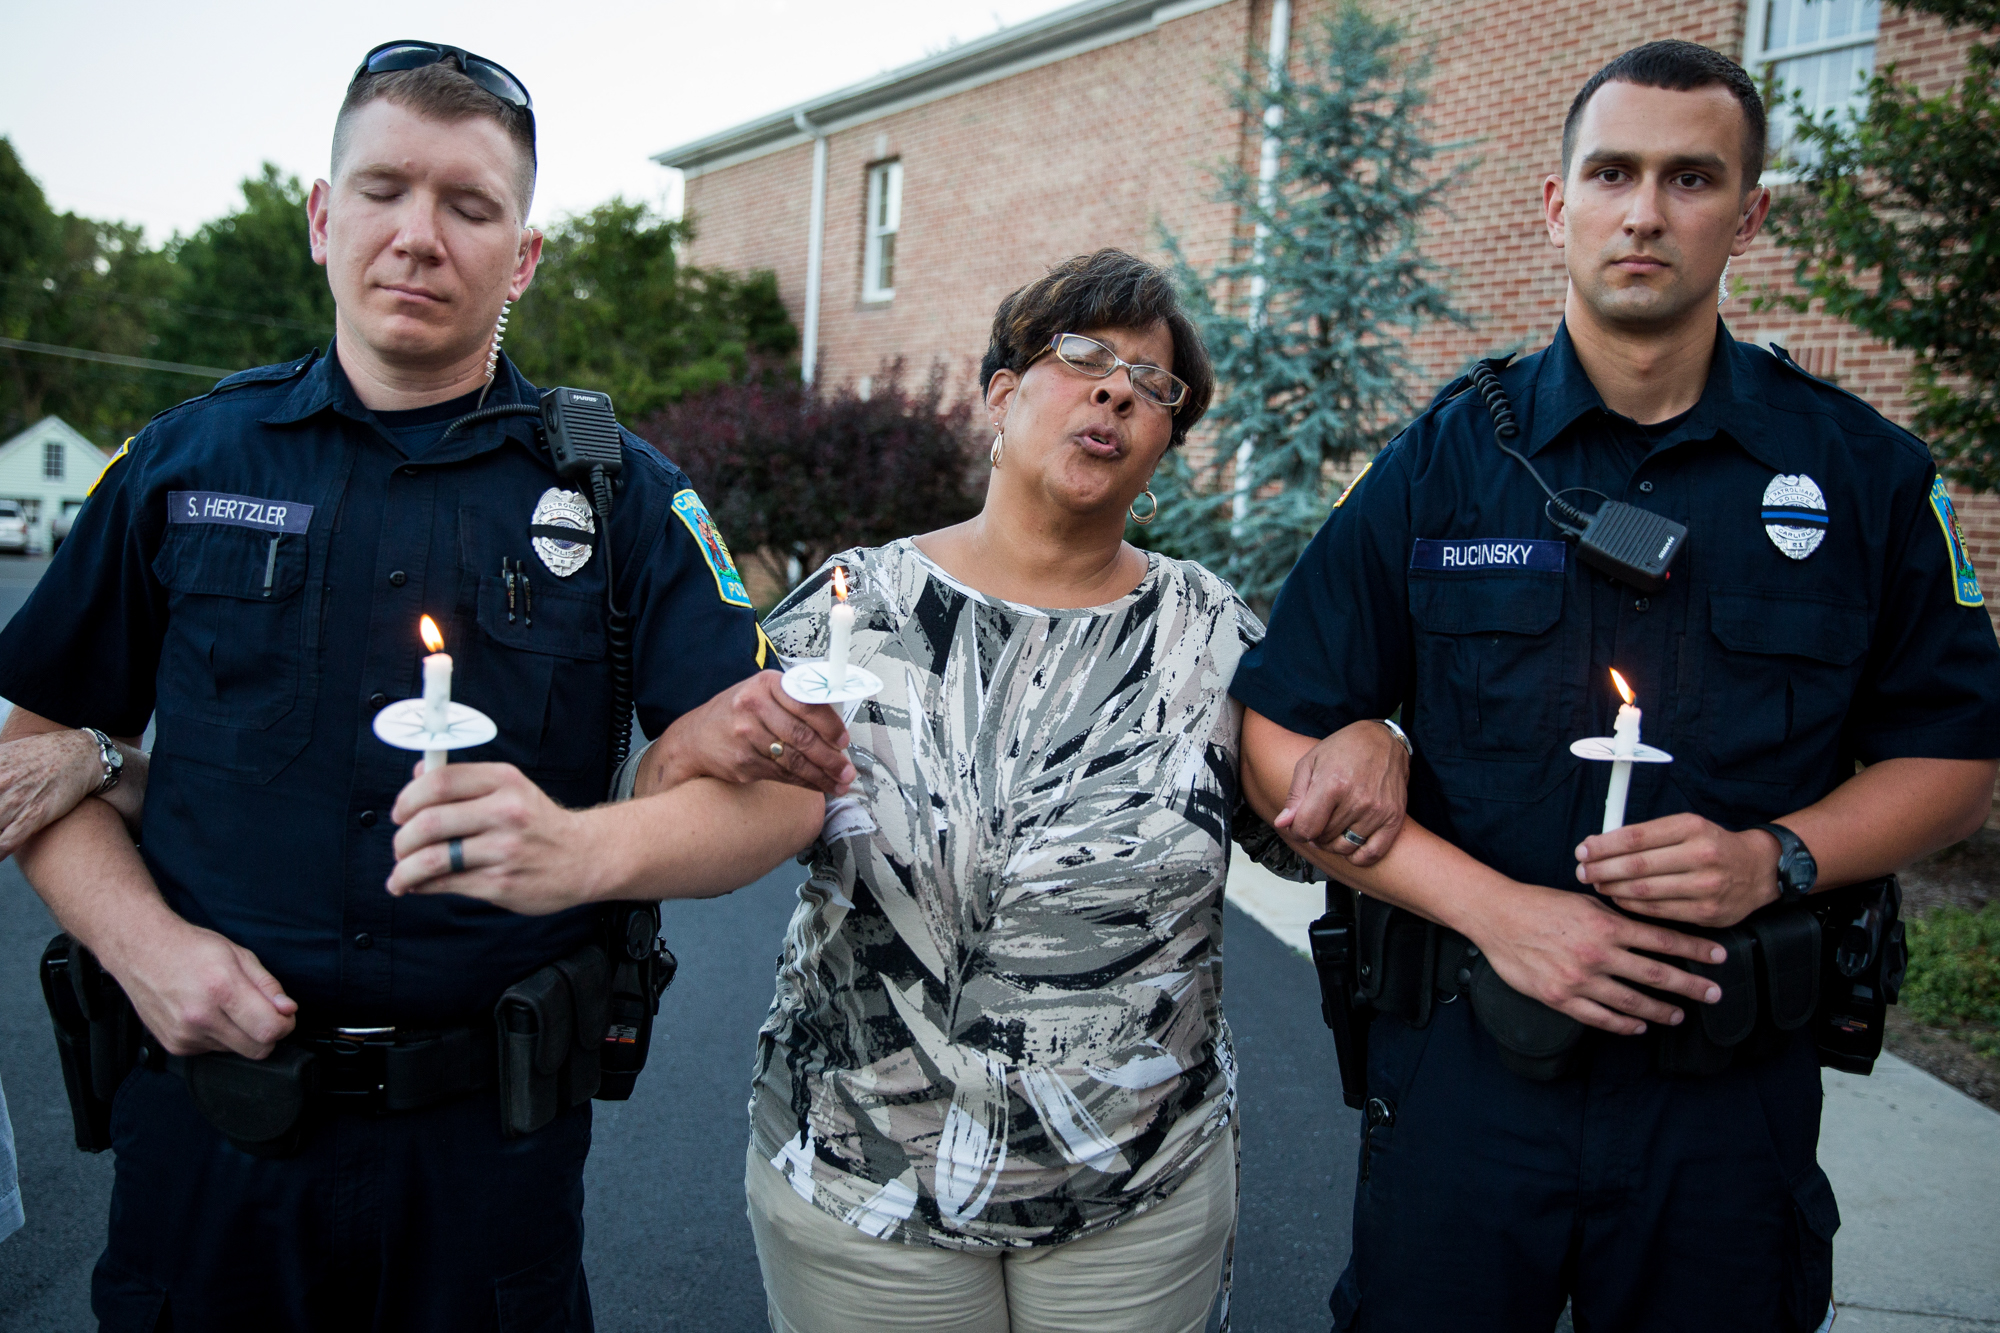 Linda Manning, center, links arms with Officer Scott Hertzler, left, and Officer Joe Rucinsky, right, during a candlelight vigil for victims of police violence and for the five Dallas police officers killed during the summer. A group from Carlisle, Pennsylvania, gathered in remembrance at the local YWCA on July 15, 2016.